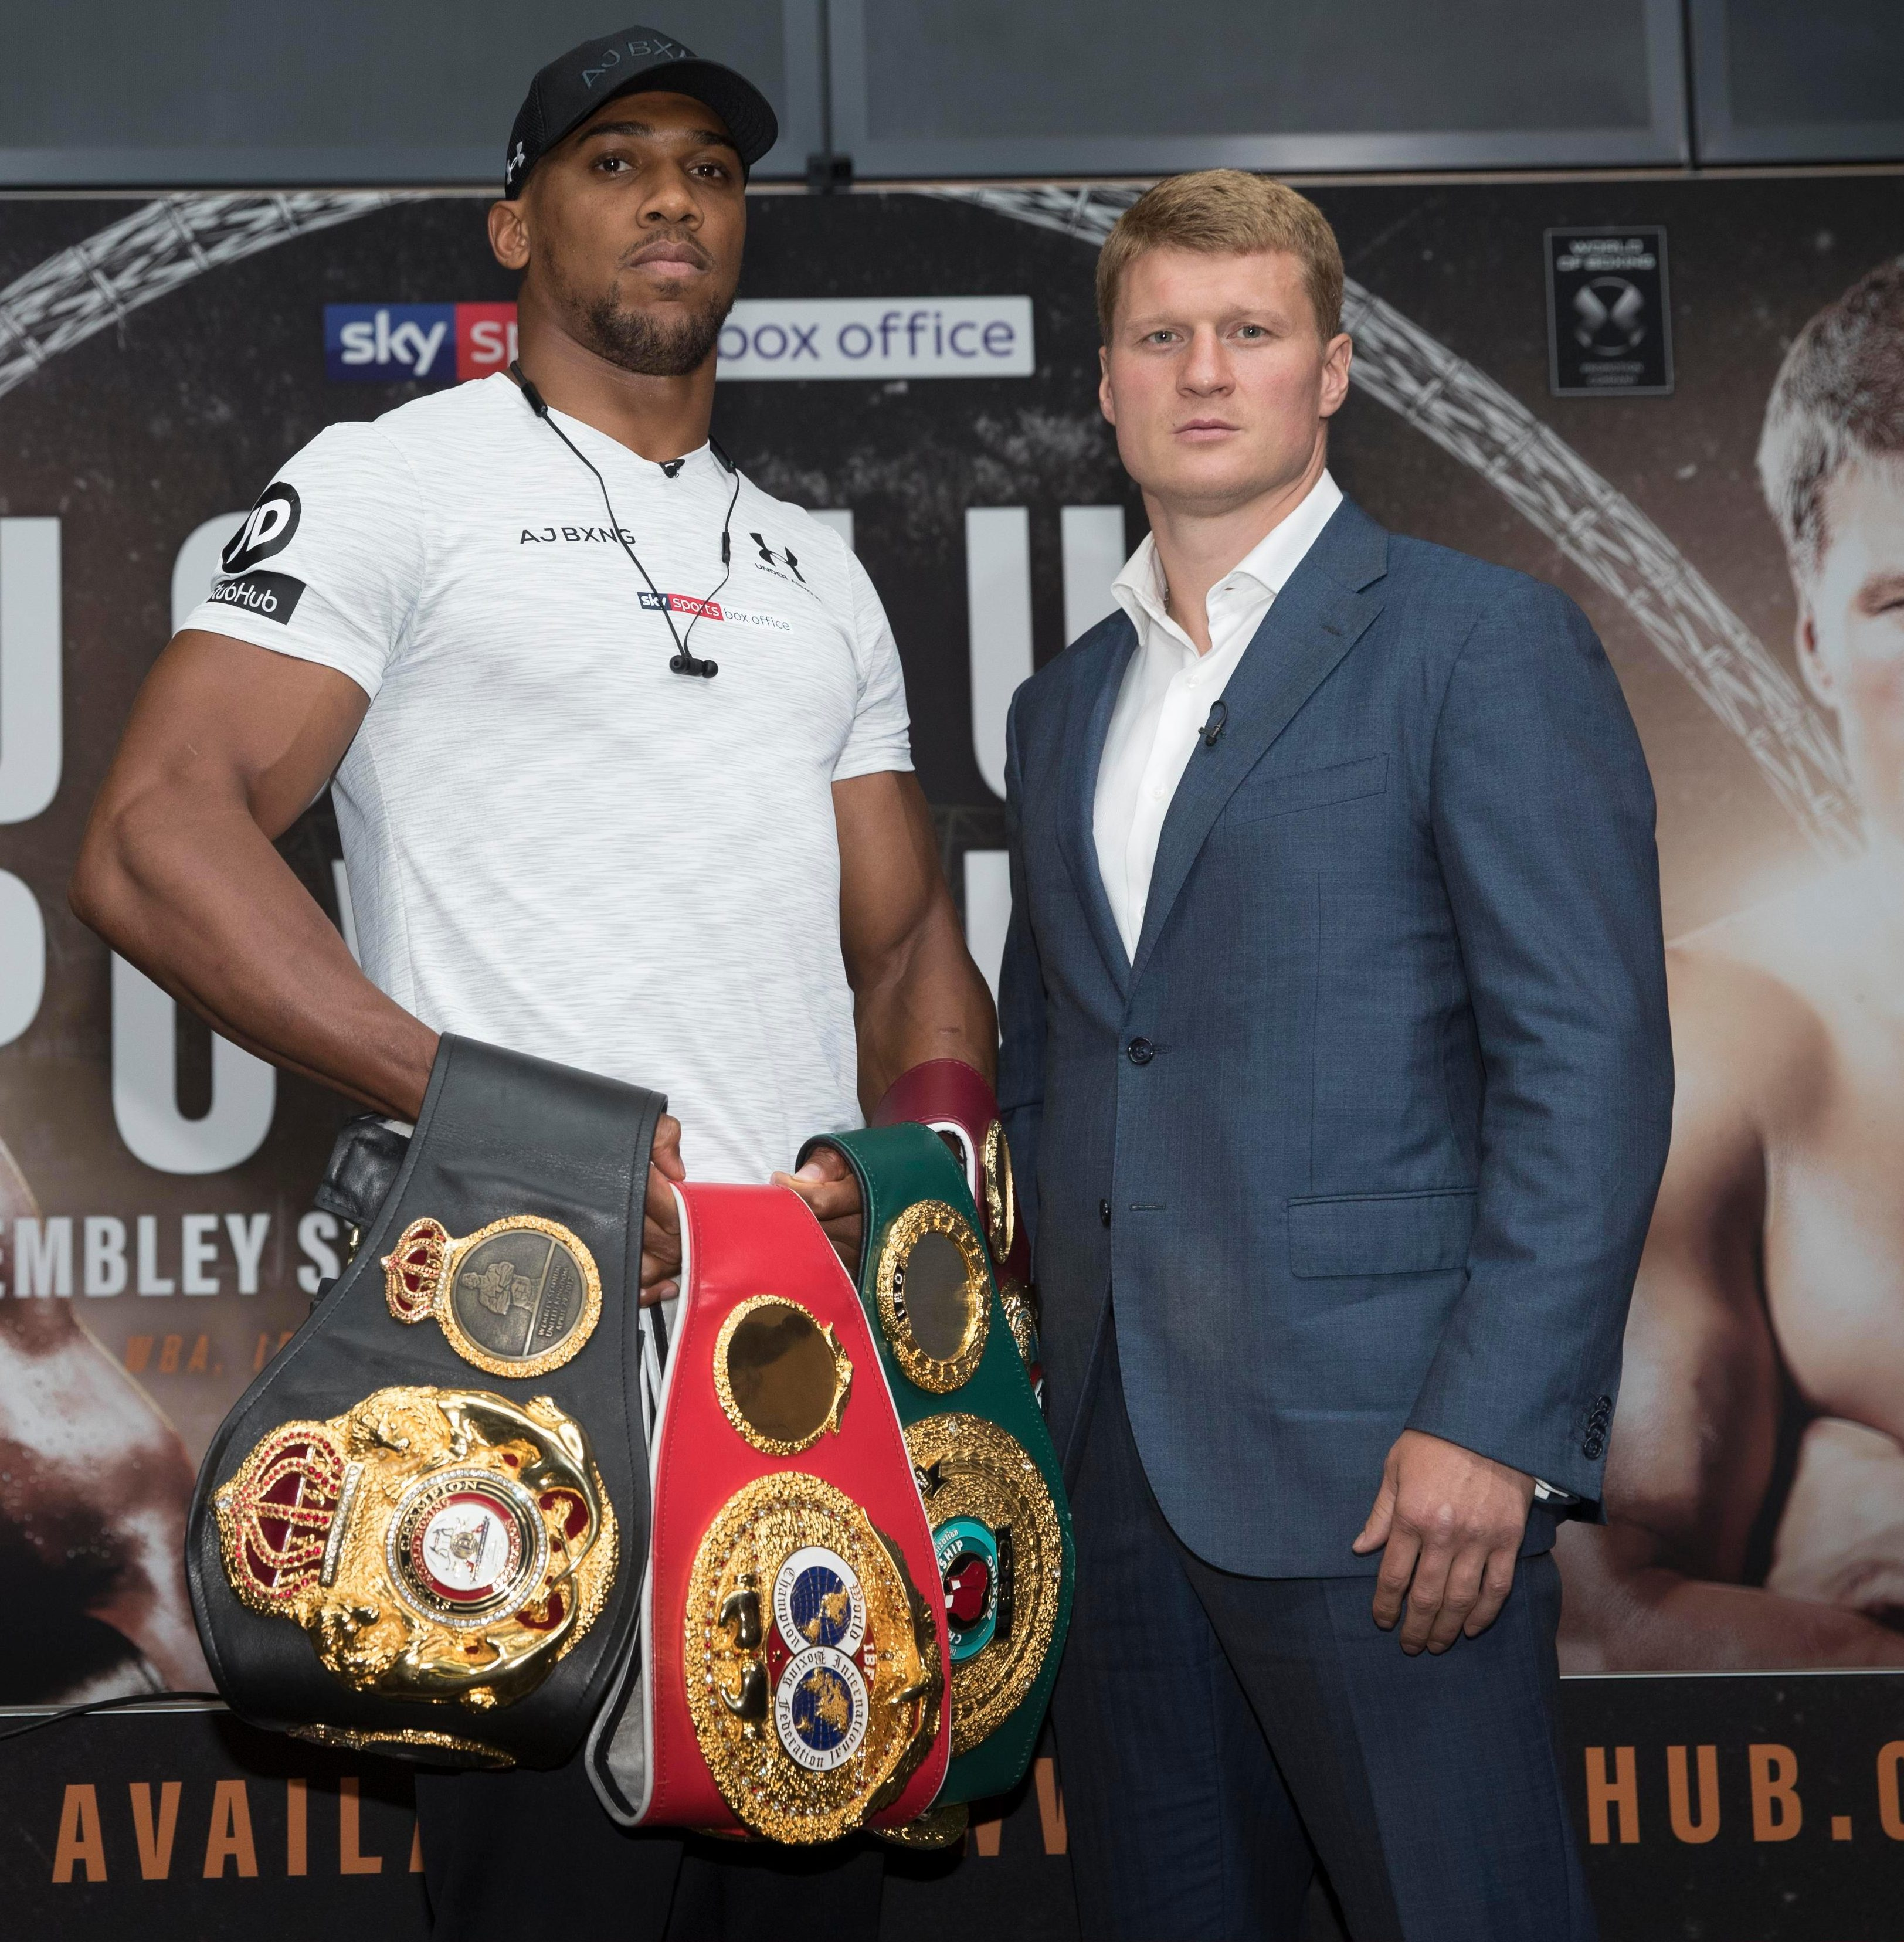 Anthony Joshua will defend his heavyweight world titles against Alexander Povetkin on September 22